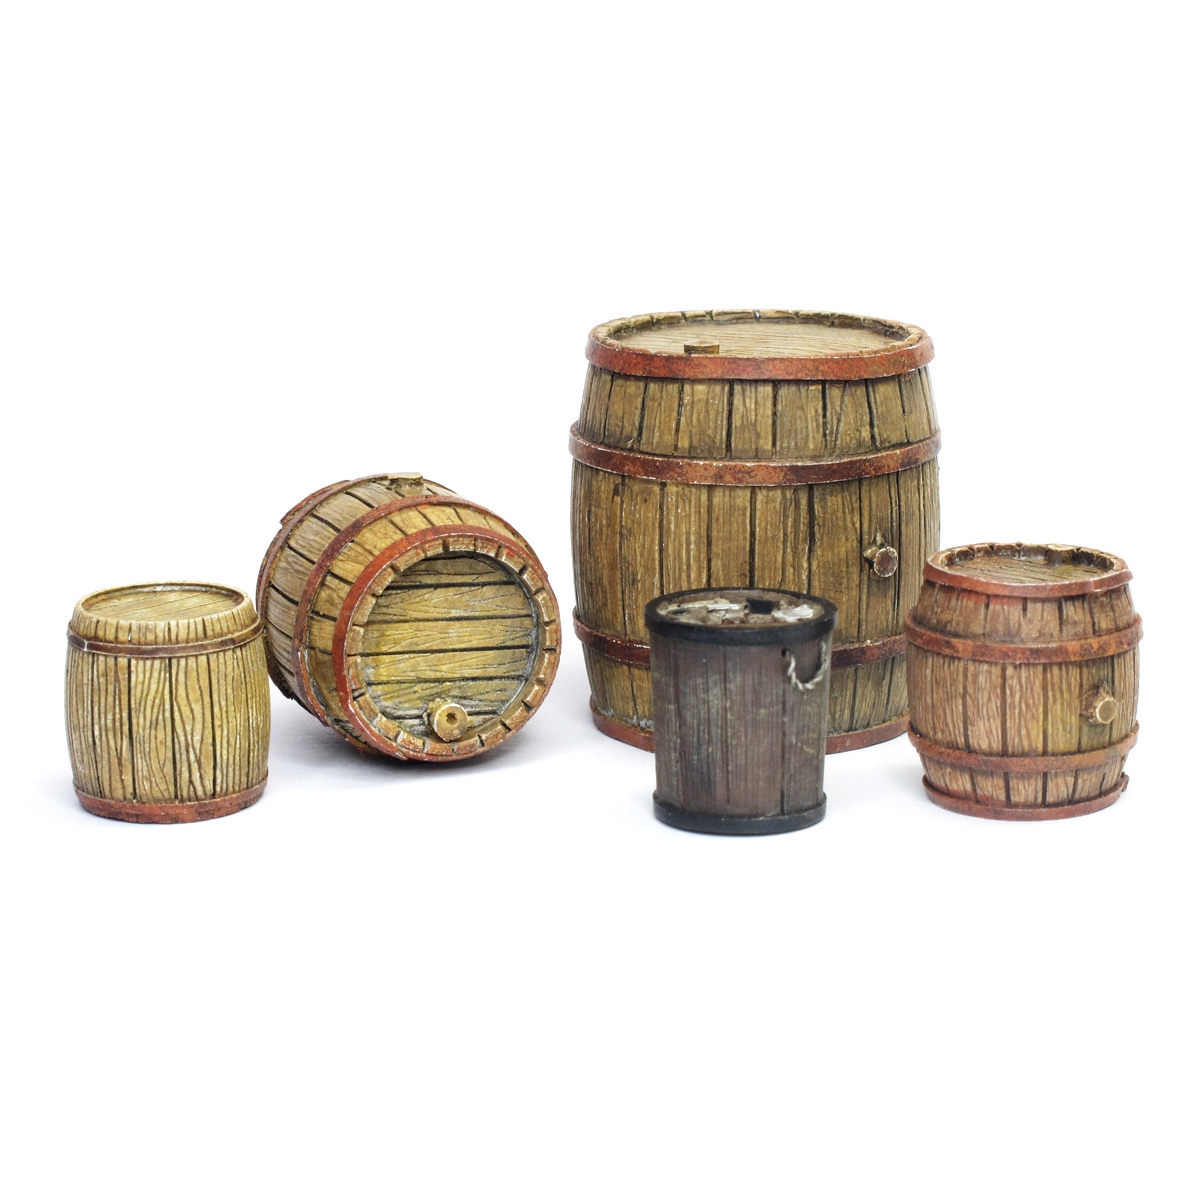 Wooden Barrels (5 pcs.)